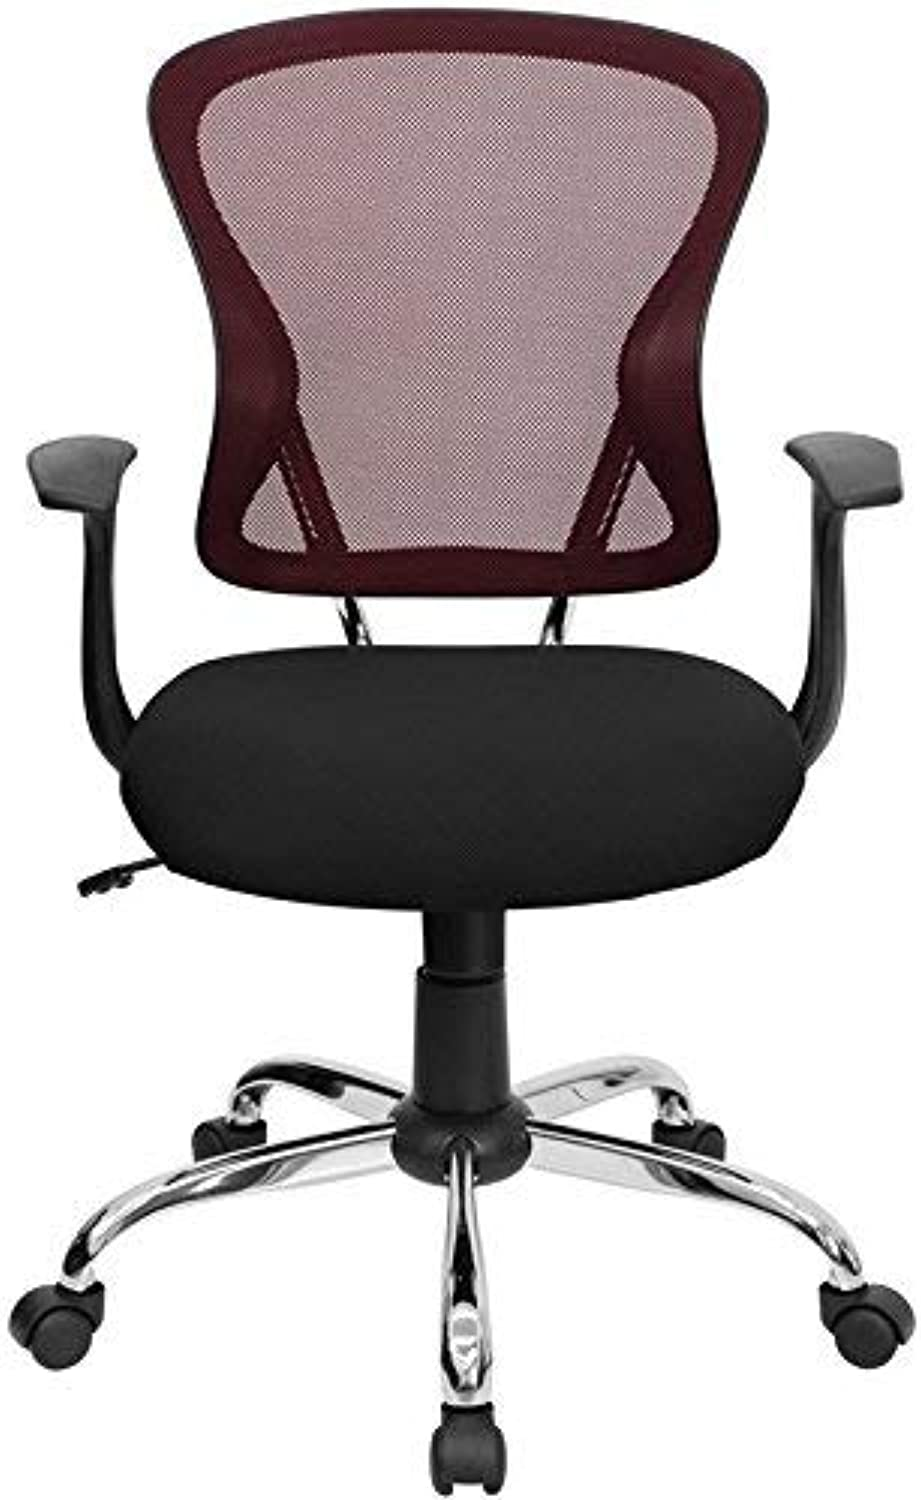 Burgundy and Black Mesh Office Chair with Chrome Finished Base [H-8369F-BG-GG]